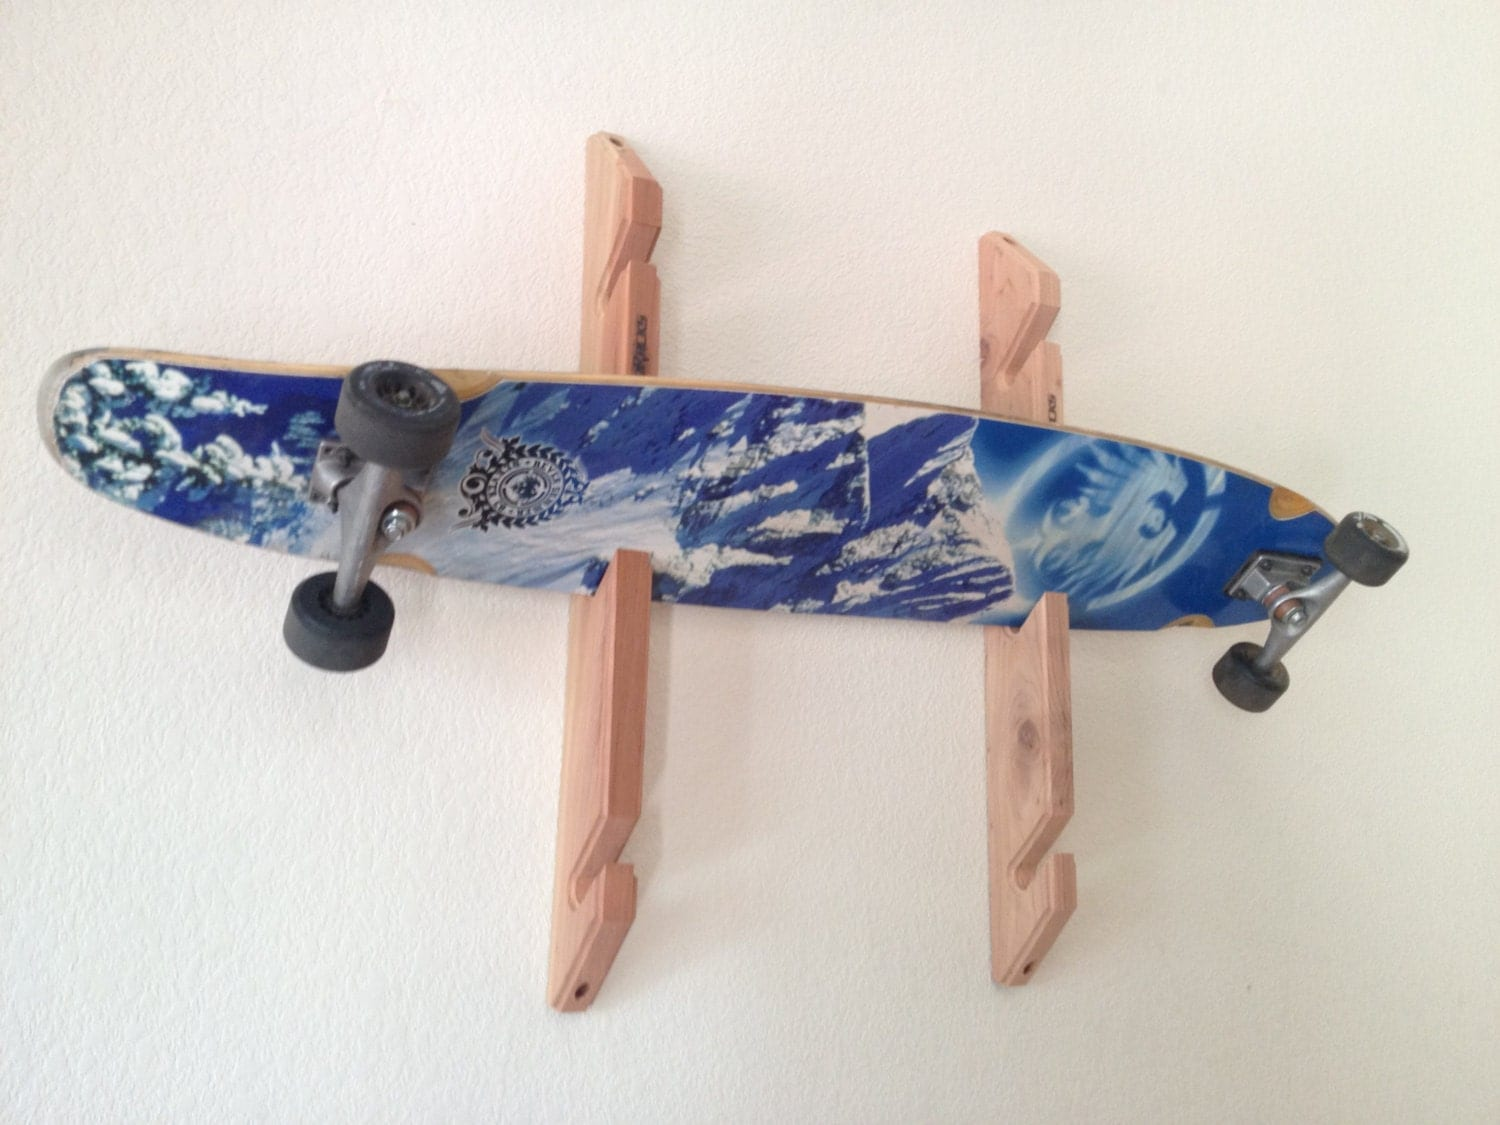 skateboard longboard wall rack mount holds 3 boards